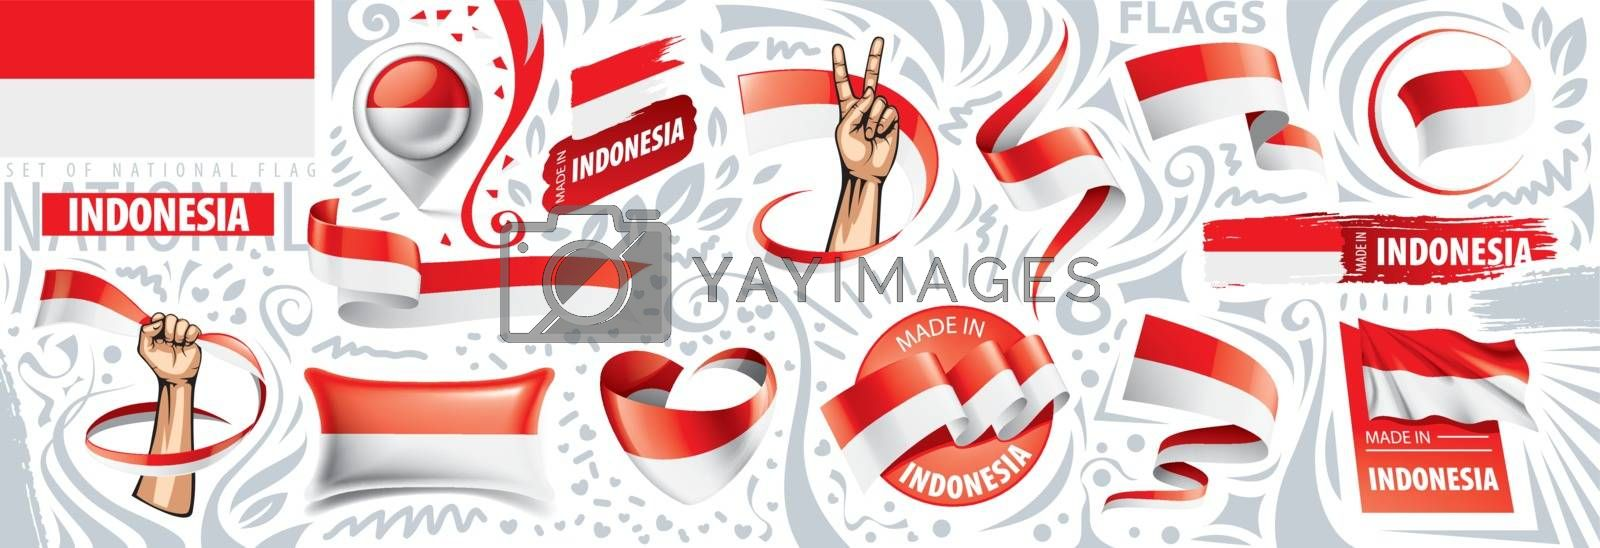 Vector set of the national flag of Indonesia in various creative designs by Butenkov